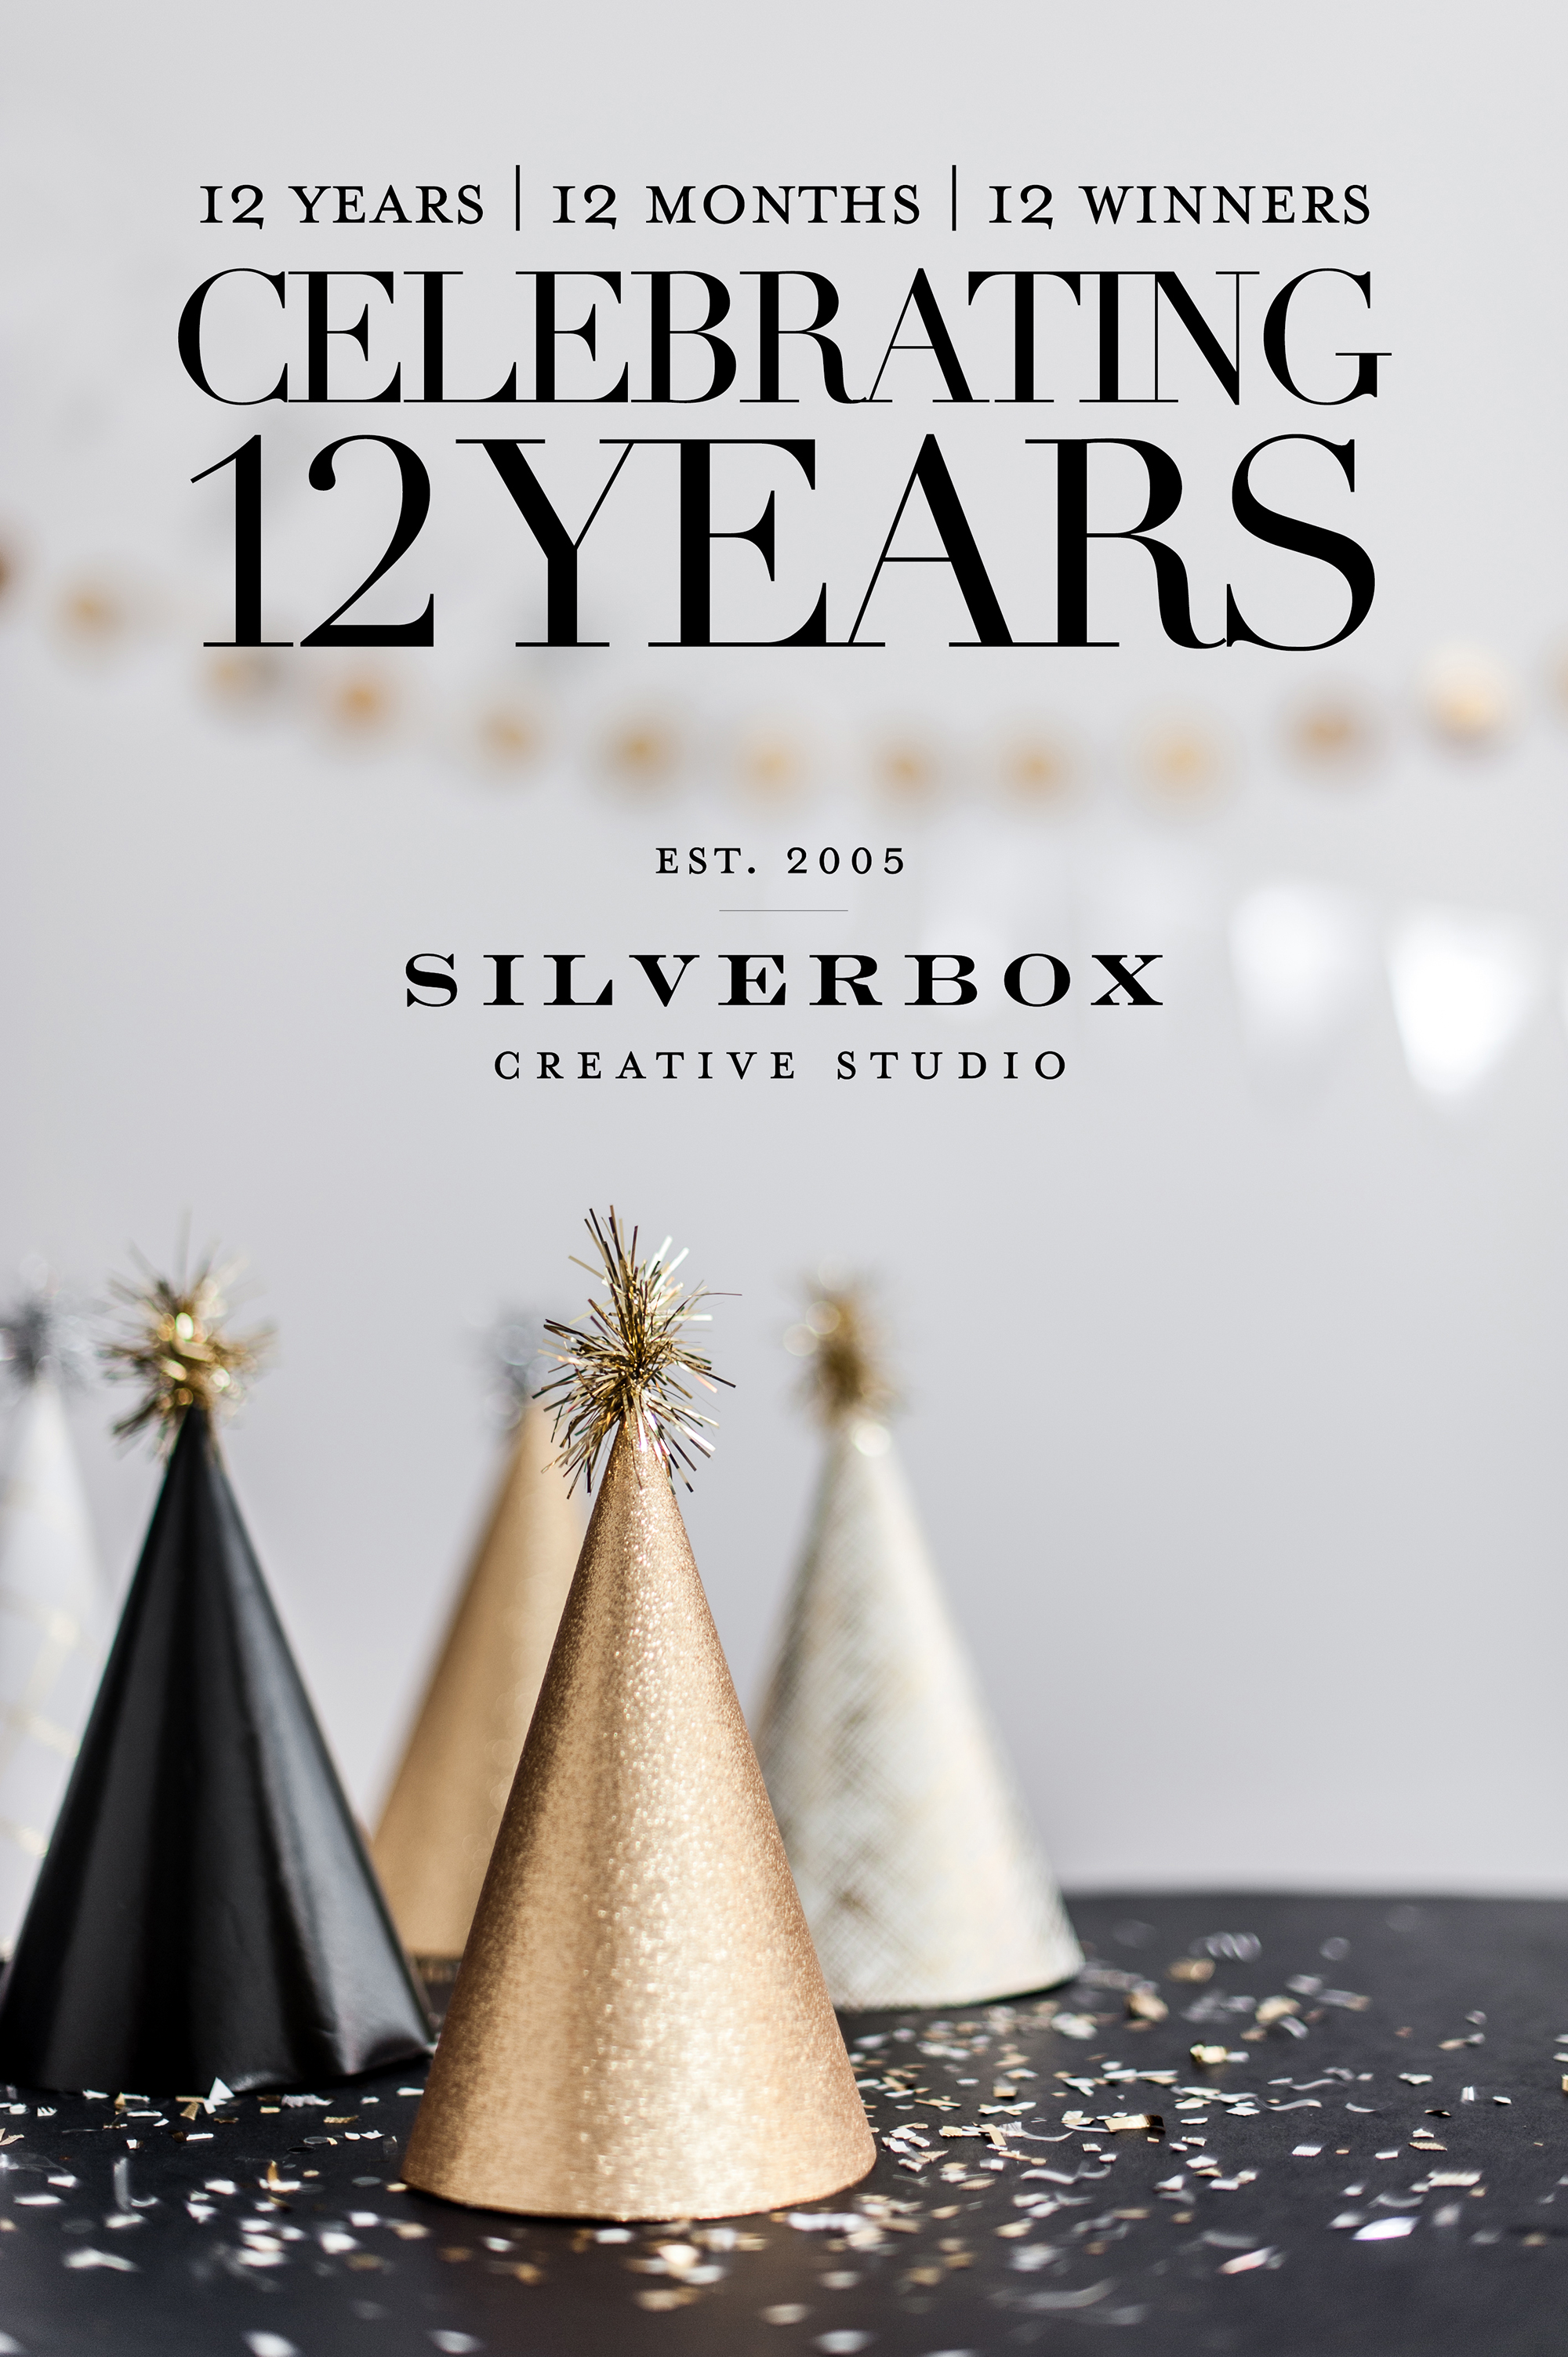 silverboxcreative-12years